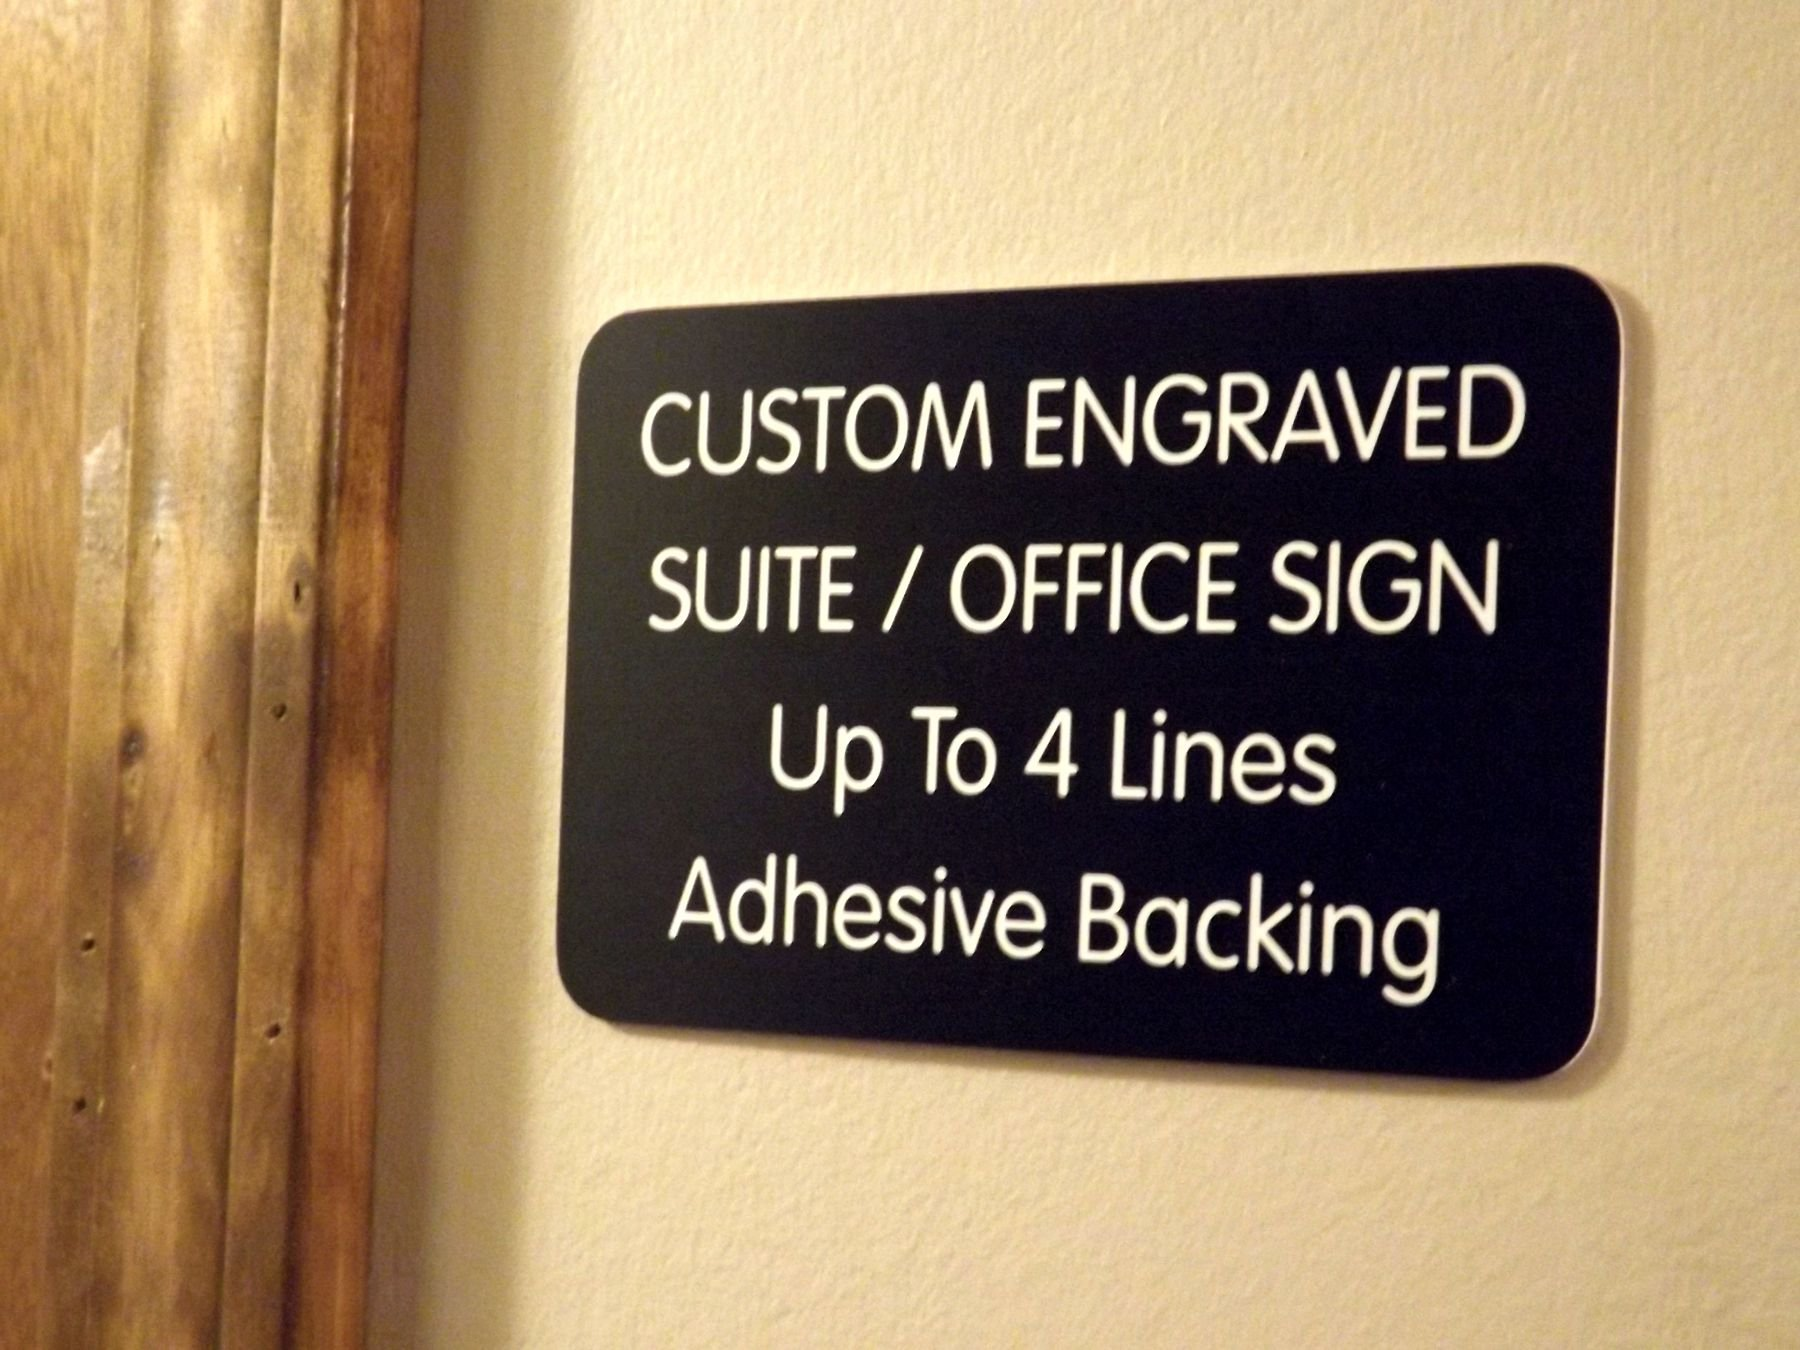 Custom Engraved 4x6 Black w/ White Lettering Door Suite Wall Sign | Name Plate | Personalized Wall Plaque | Business Doctor Law Firm Home Office Cafe Shop | Up to 4 Text Lines | Adhesive Backed by Jay Graphics (Image #1)